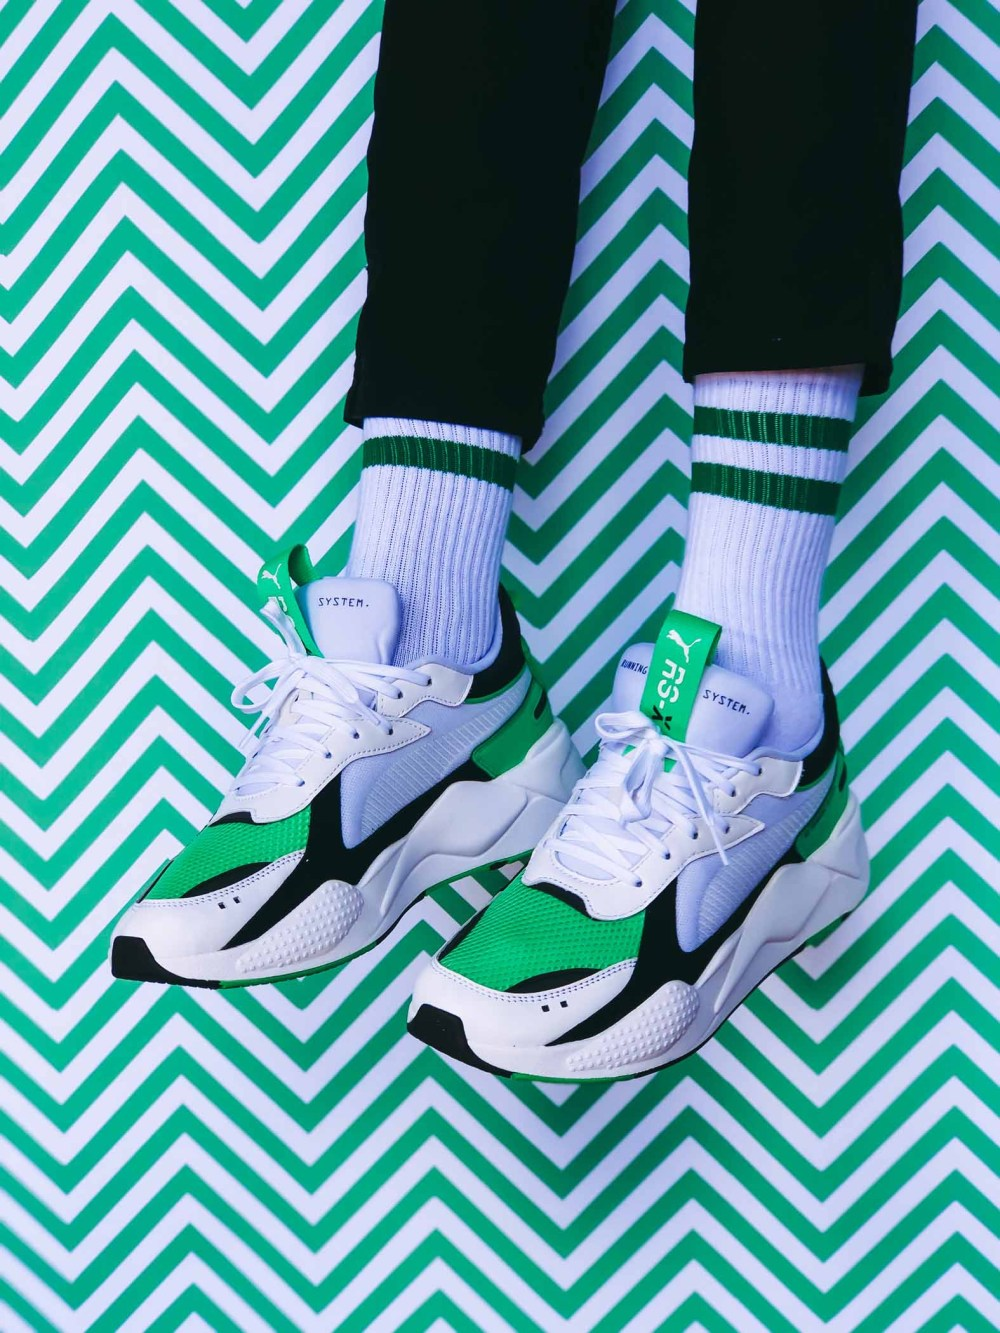 puma rs-x reinvention PUMA RS-X Reinvention Drop In Green & White PUMA RS X Reinvention image by YoMzansi 2 lo